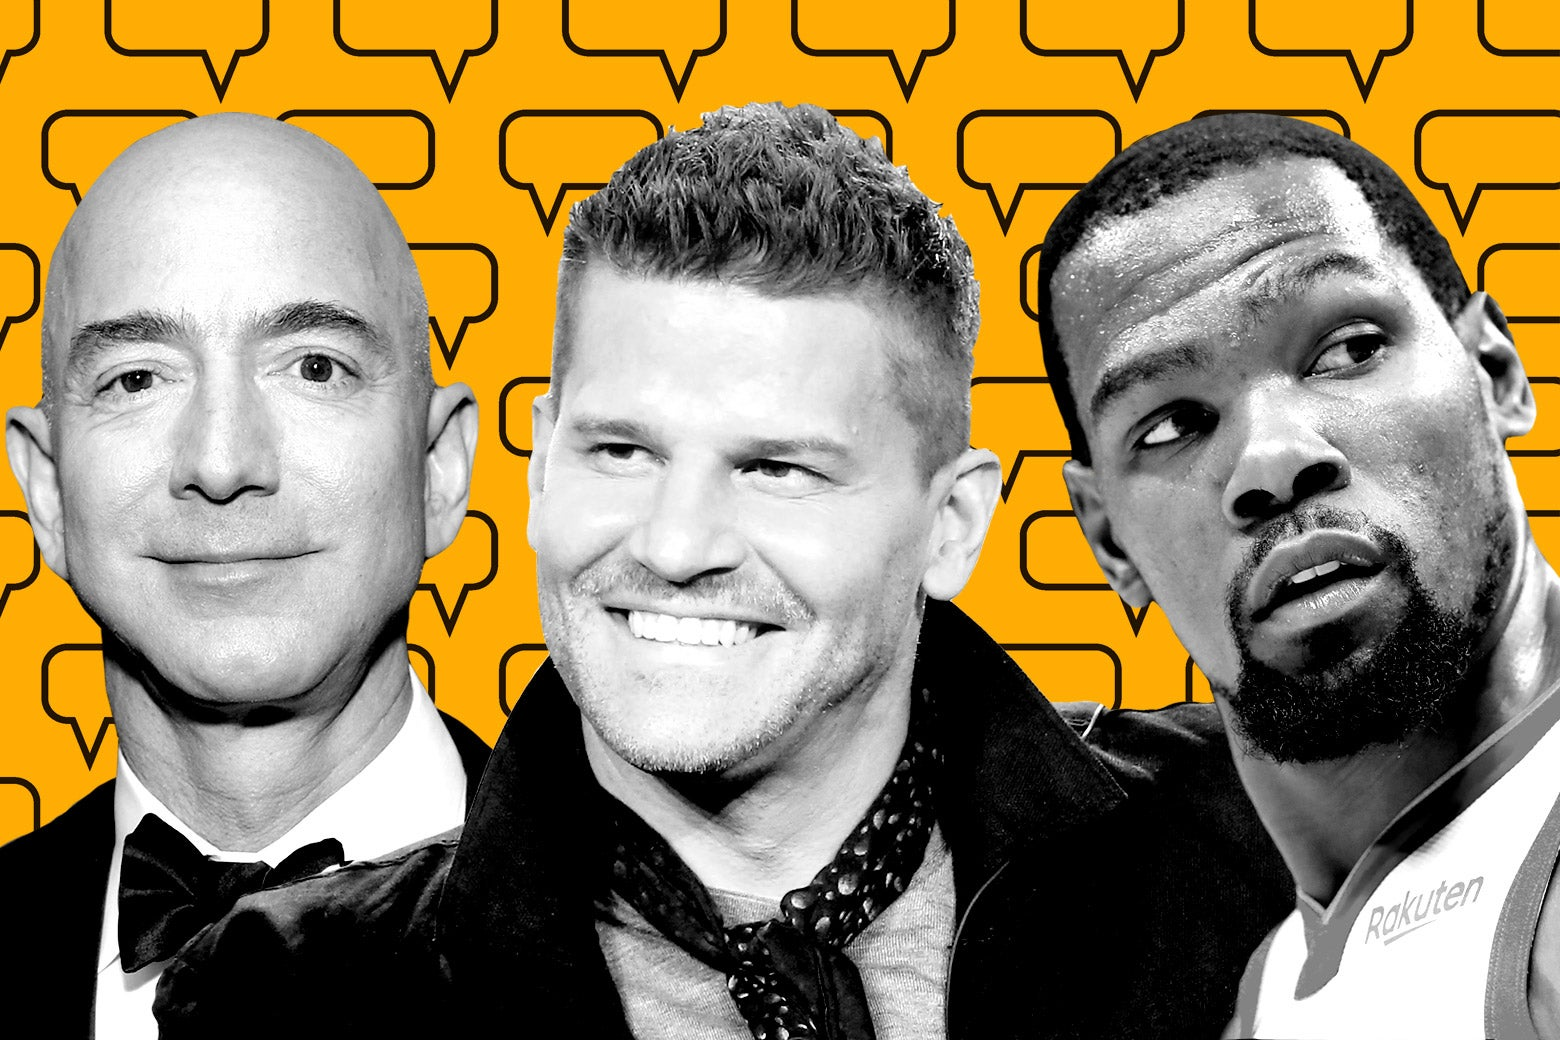 Photo illustration of known sexters Jeff Bezos, David Boreanaz, and Kevin Durant